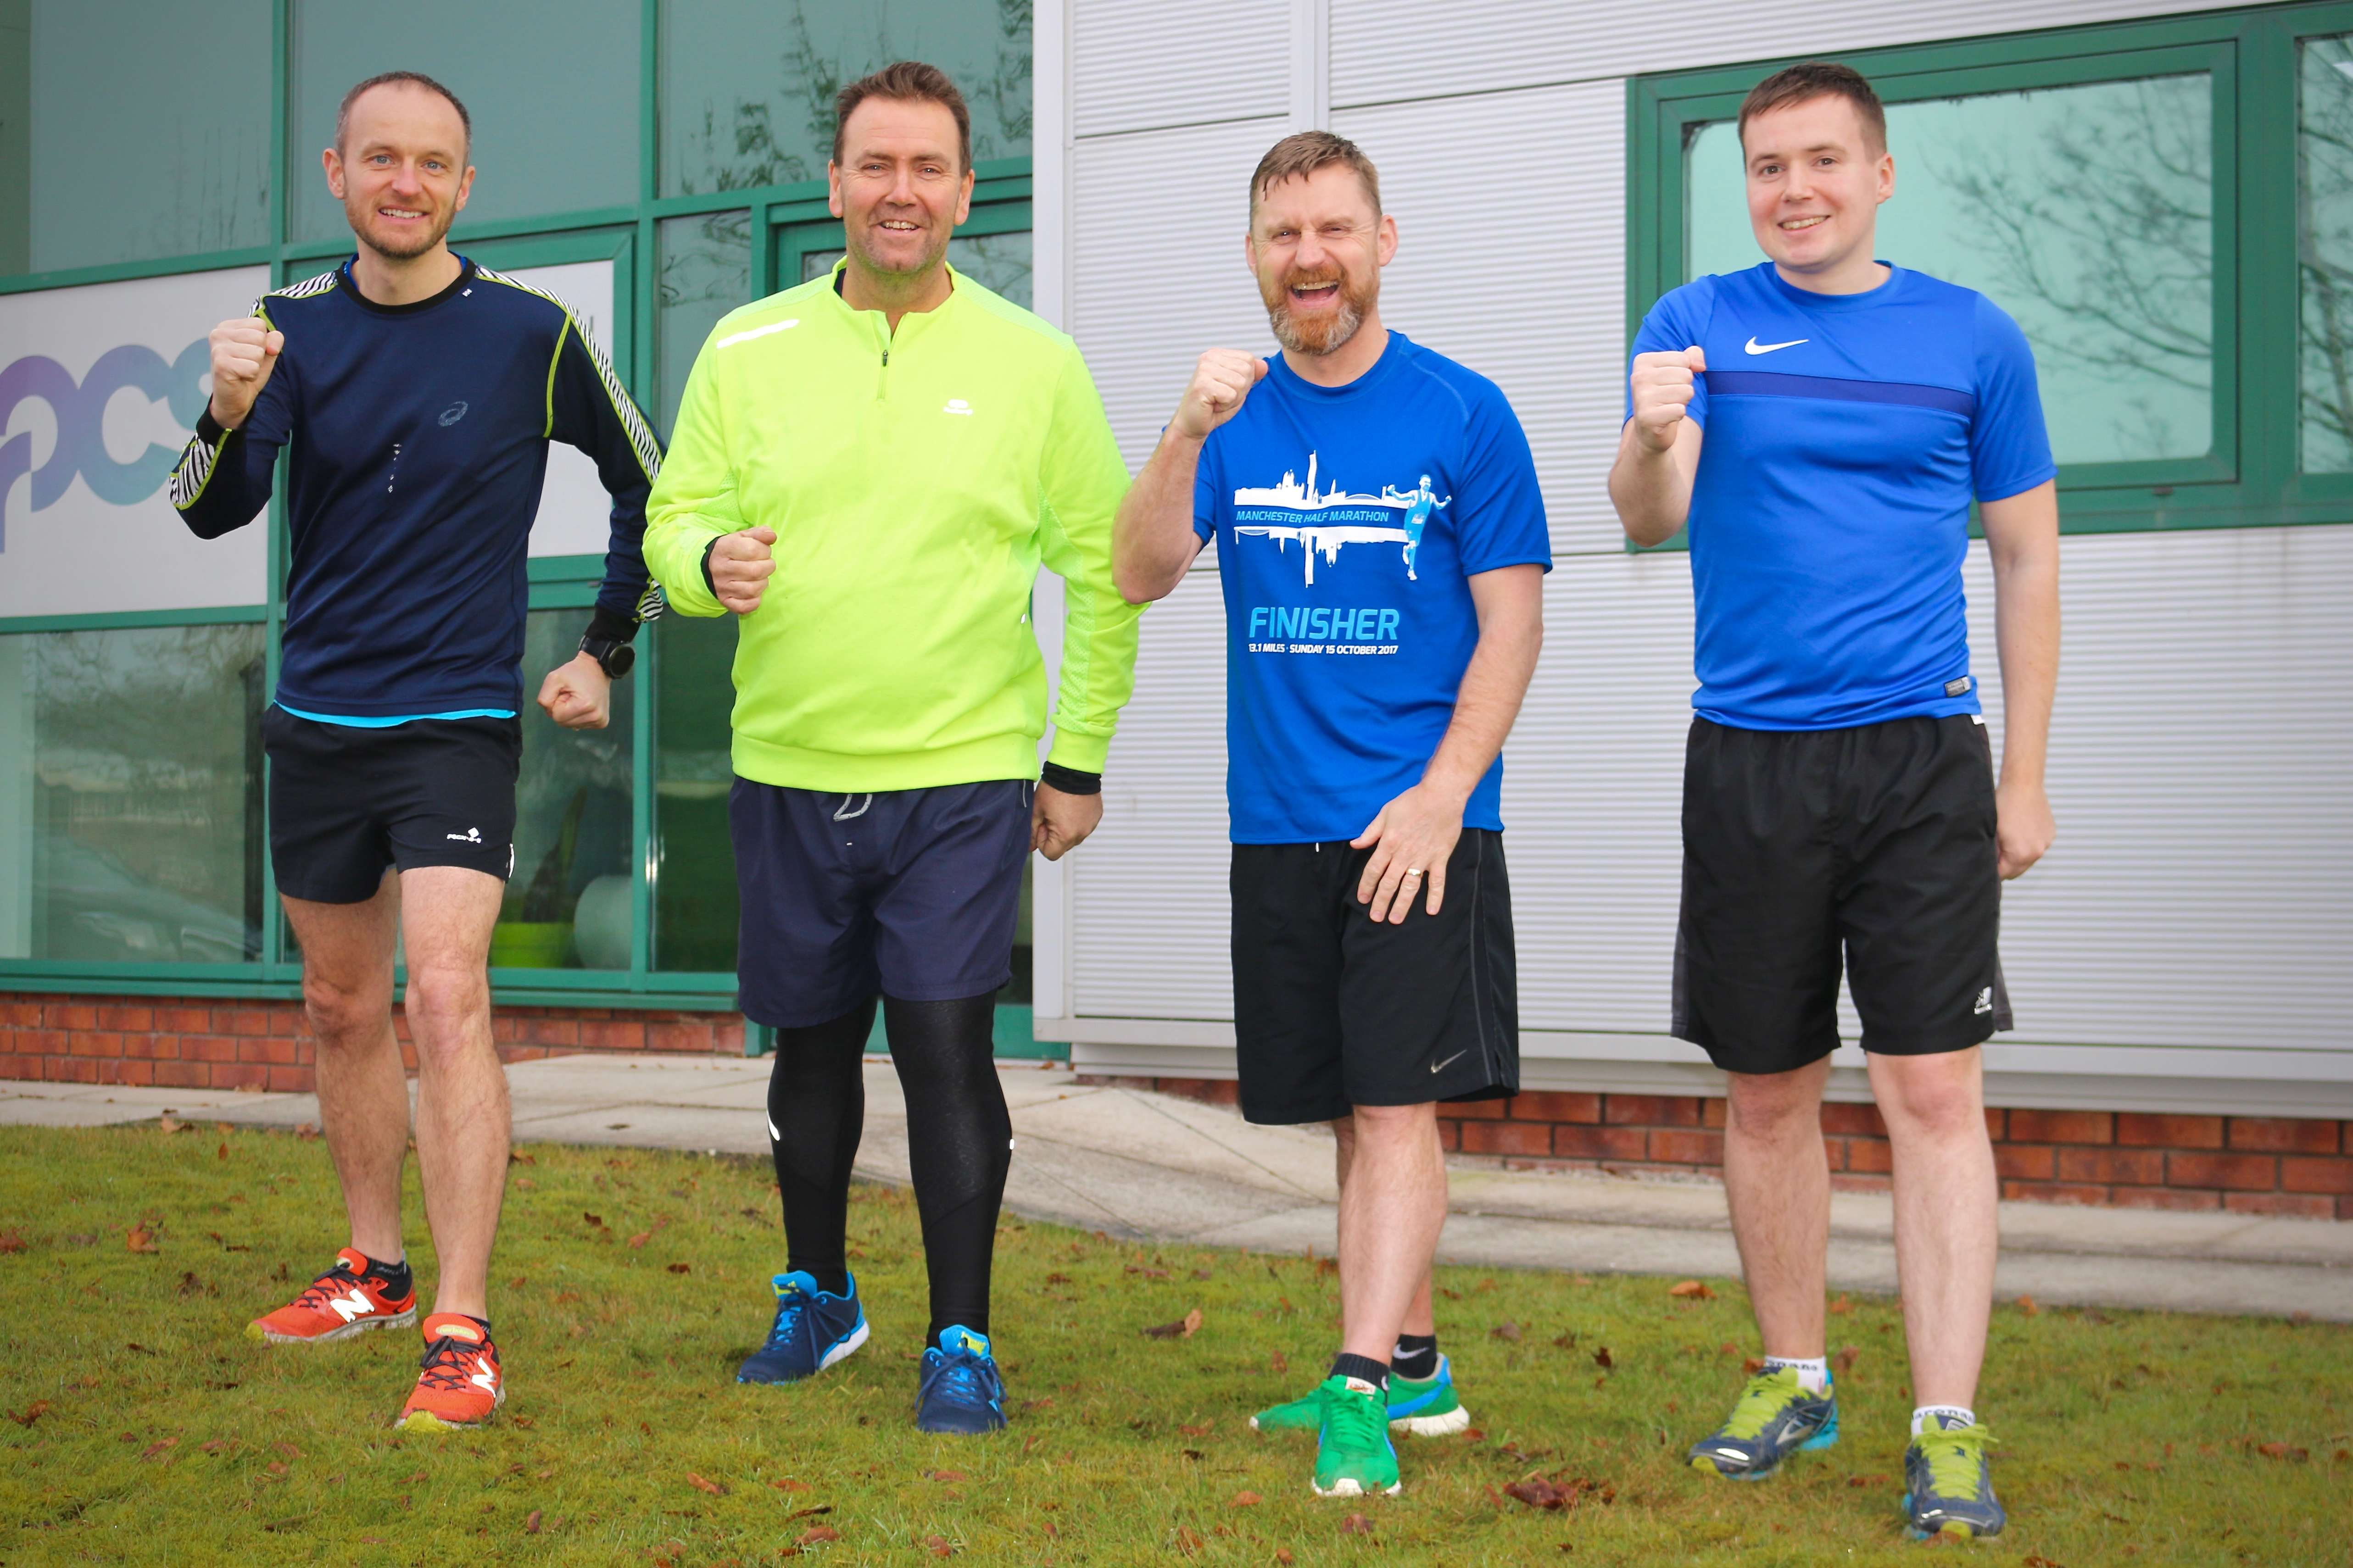 PCS Take on Wilmslow Half Marathon in Aid of the Matthew Nicholls Trust